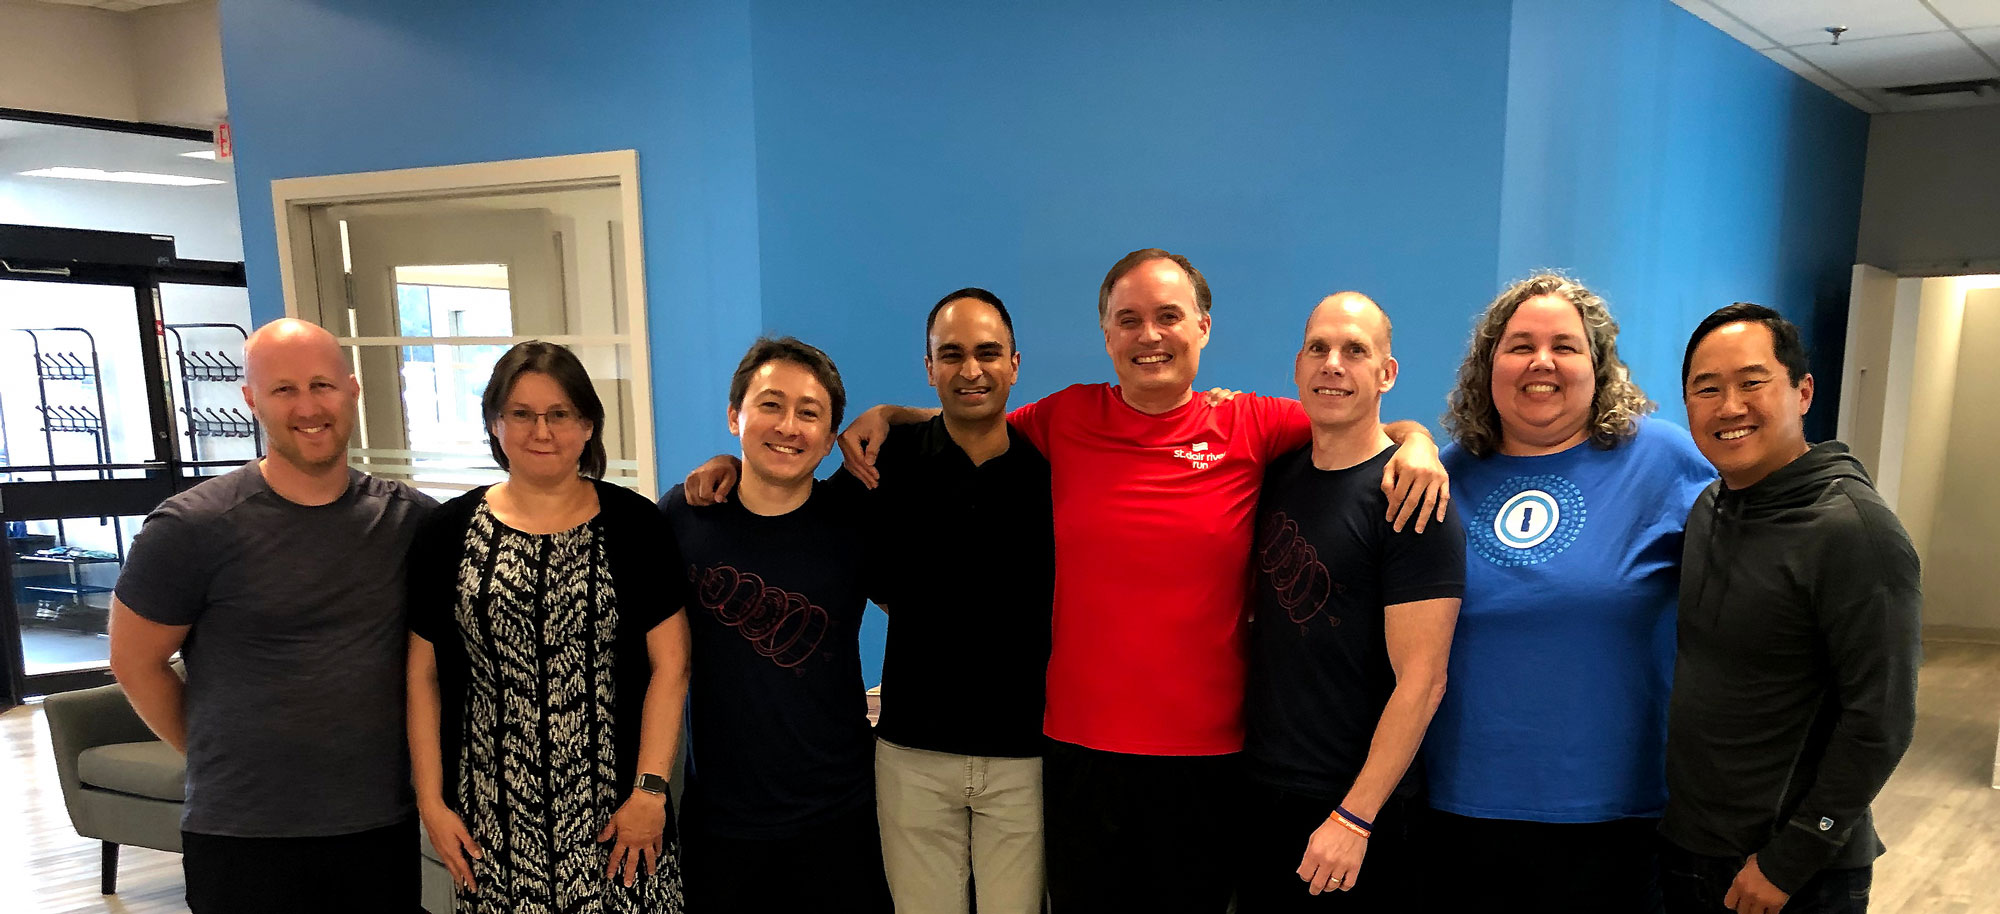 Group hug after sealing the deal in our St. Thomas, Ontario office. From left to right: Dan Levine, Natalia Karimova, Roustem Karimov, Arun Mathew, Dave Teare, Jeff Shiner, Sara Teare, Rich Wong.